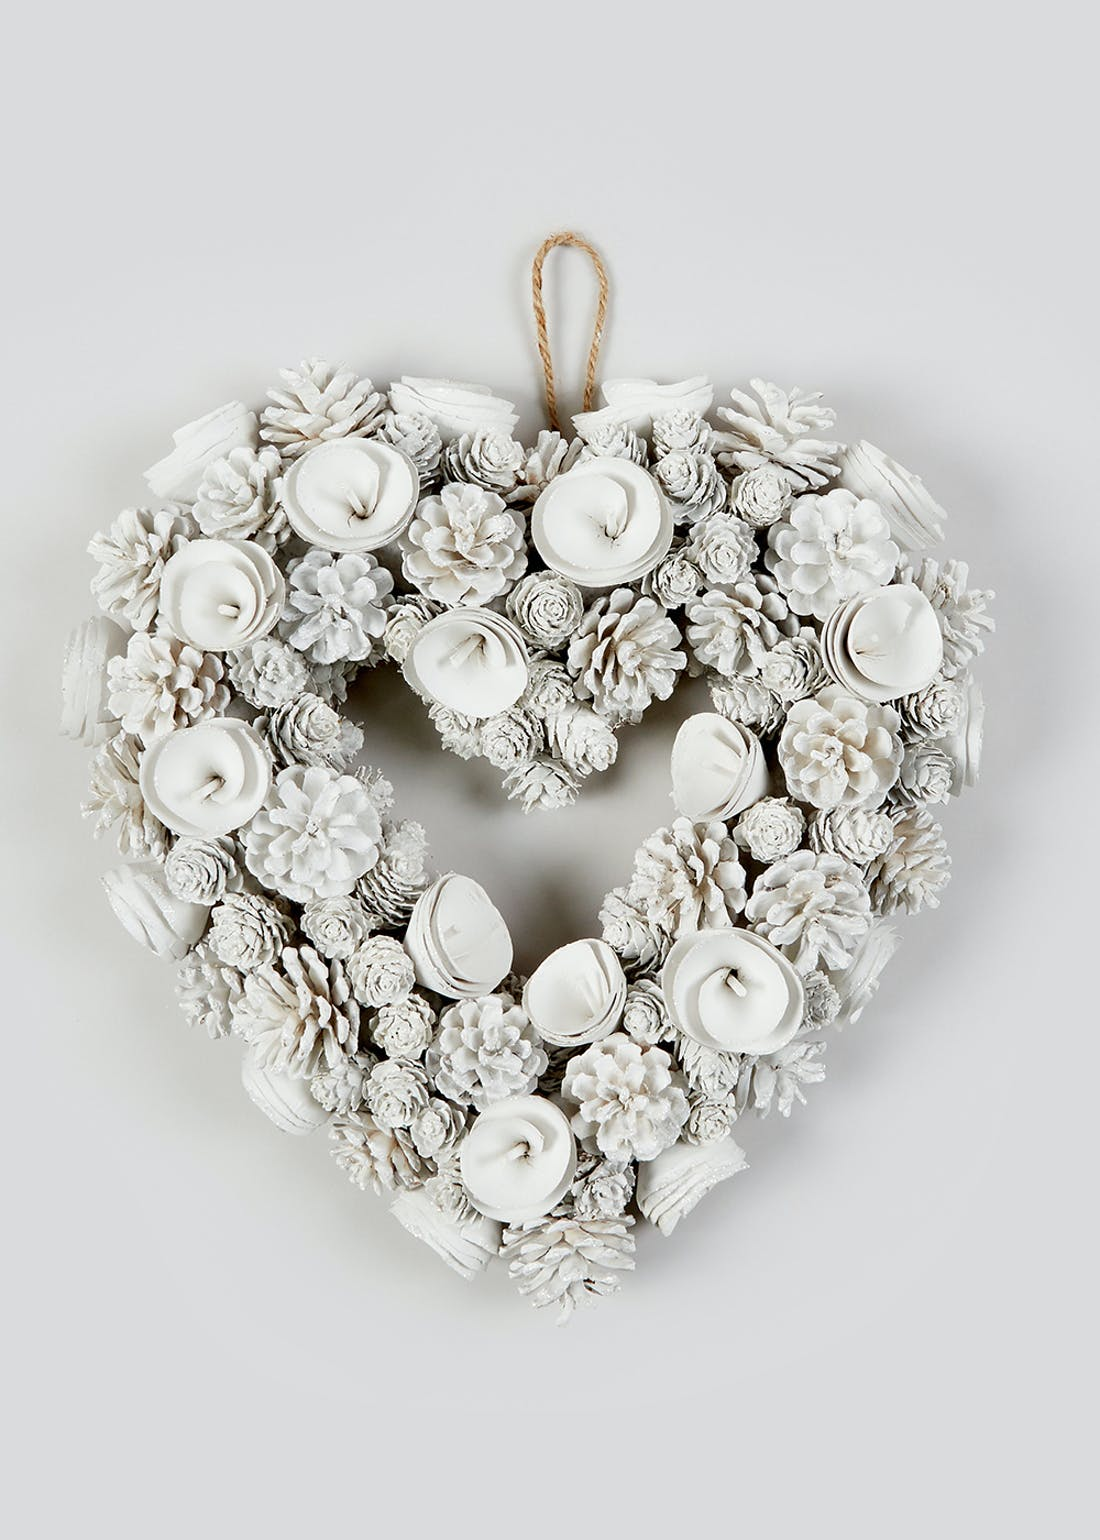 Floral Heart Christmas Wreath (38cm)